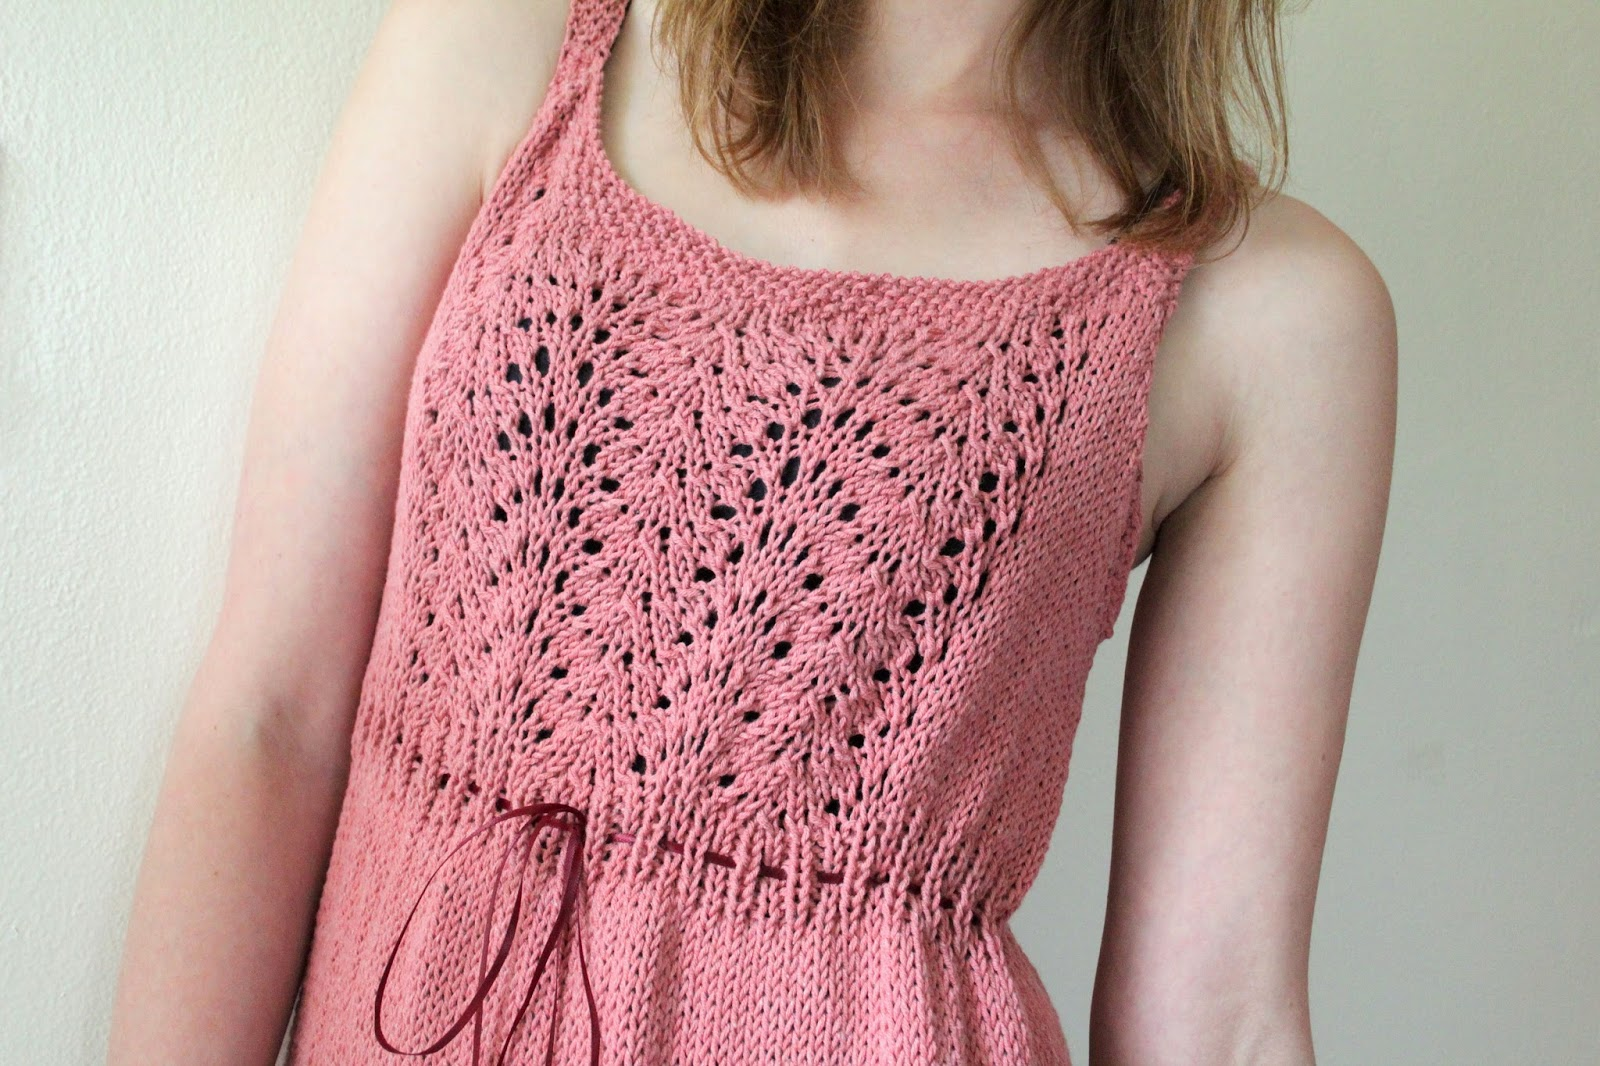 Summer Knitting Patterns : The Fuzzy Square: Summer Knit Sun Dress with Lace